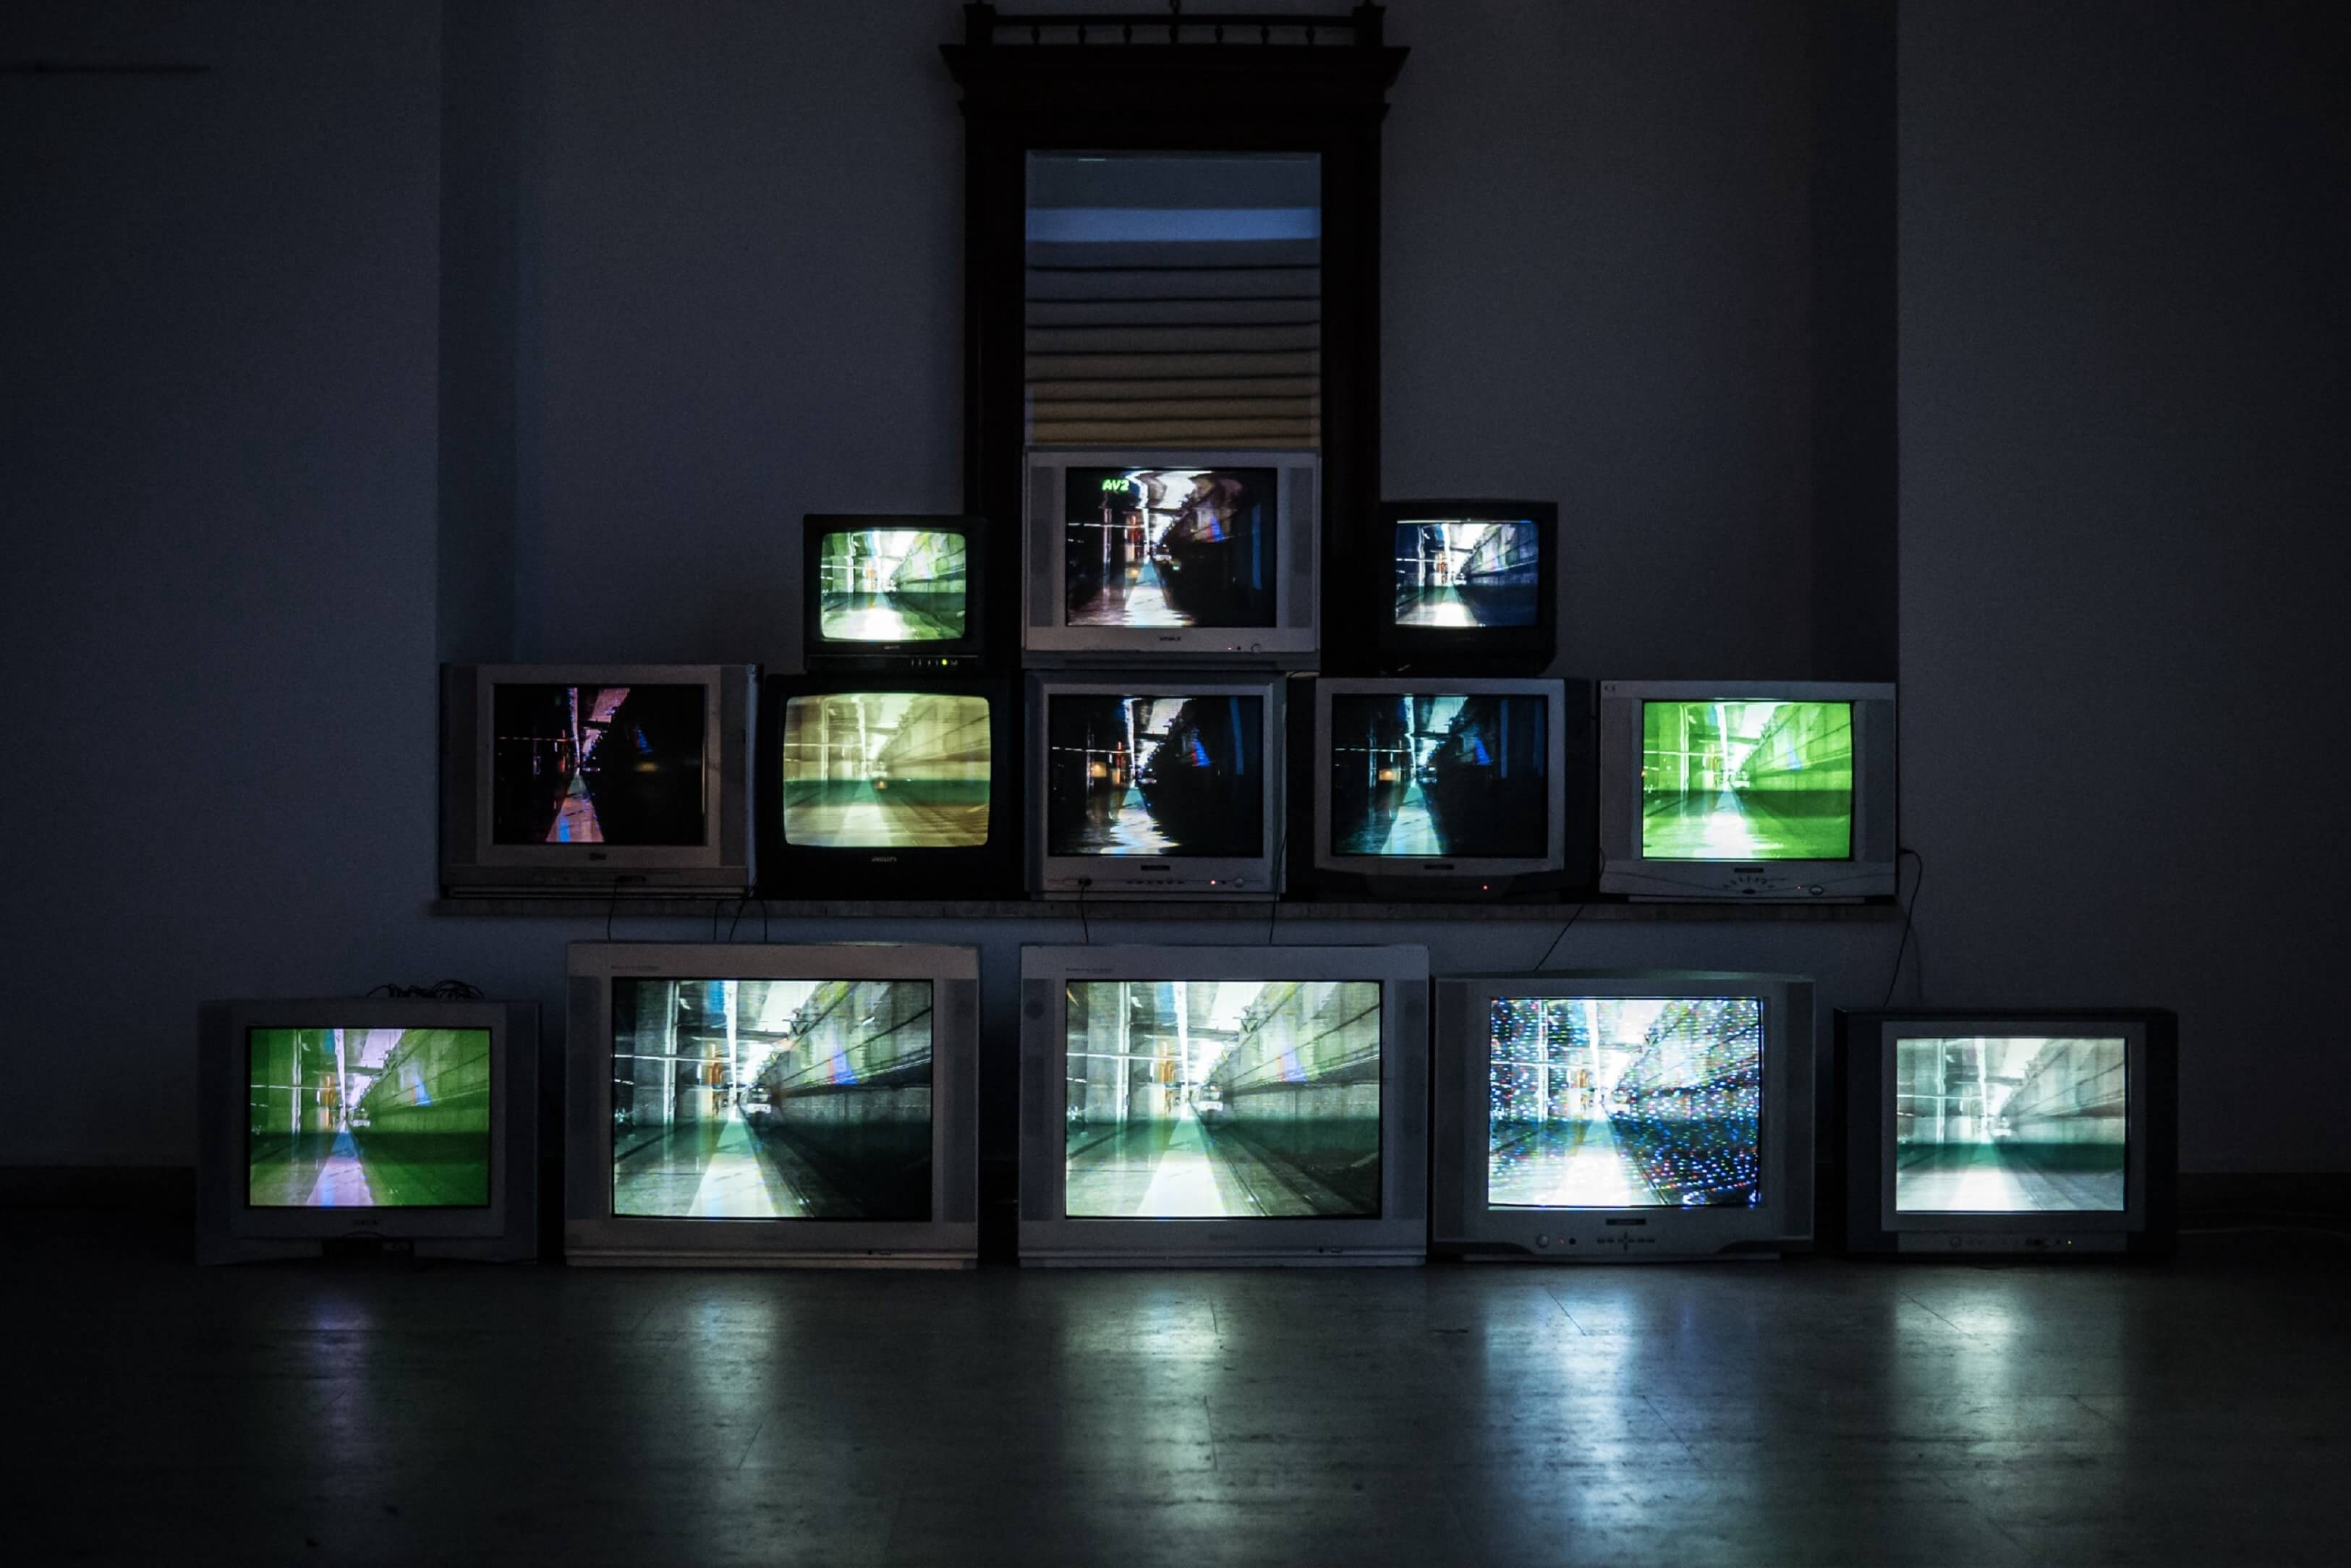 A row of televisions turned on in a dark room.